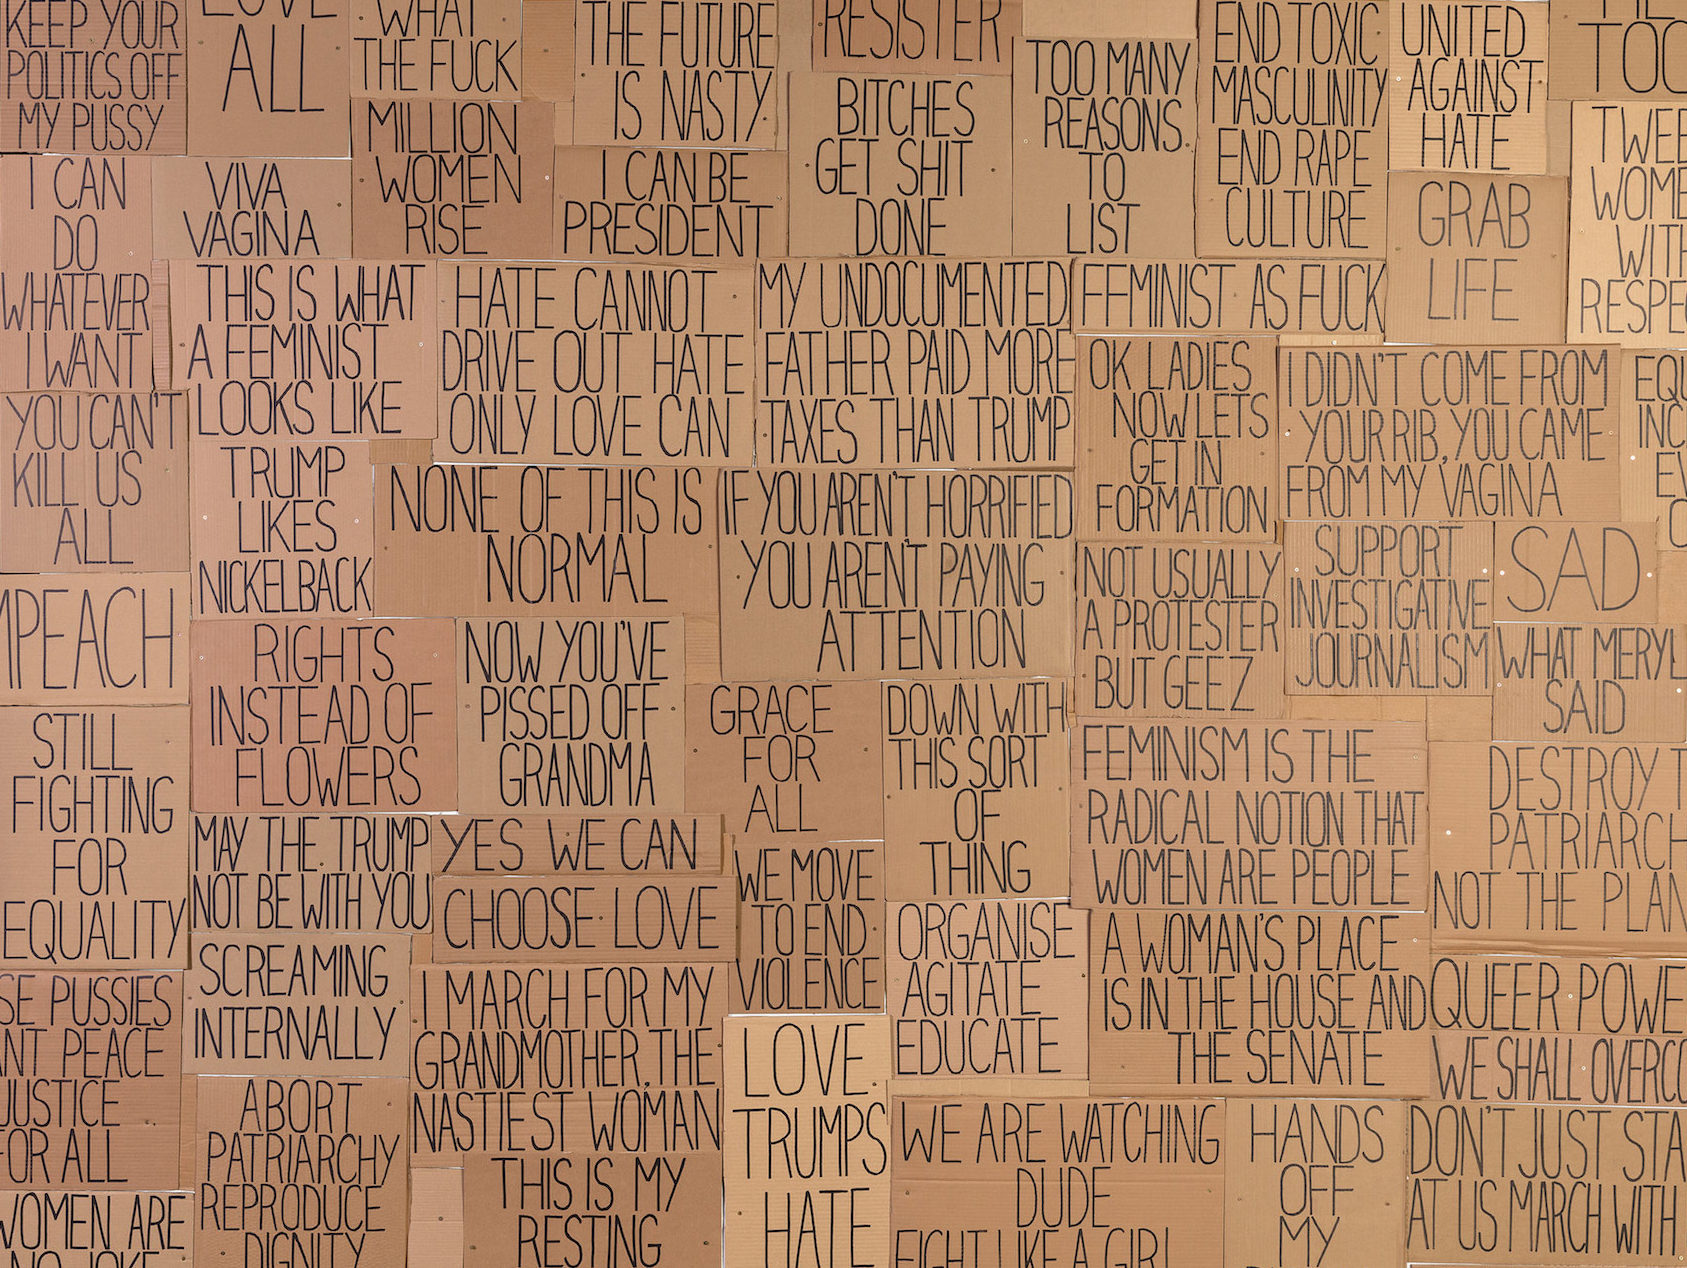 Sarah Goffman, I am with you 2017 (detail), Unfinished Business: Perspectives on art and feminism, 2017, Australian Centre for Contemporary Art, Melbourne